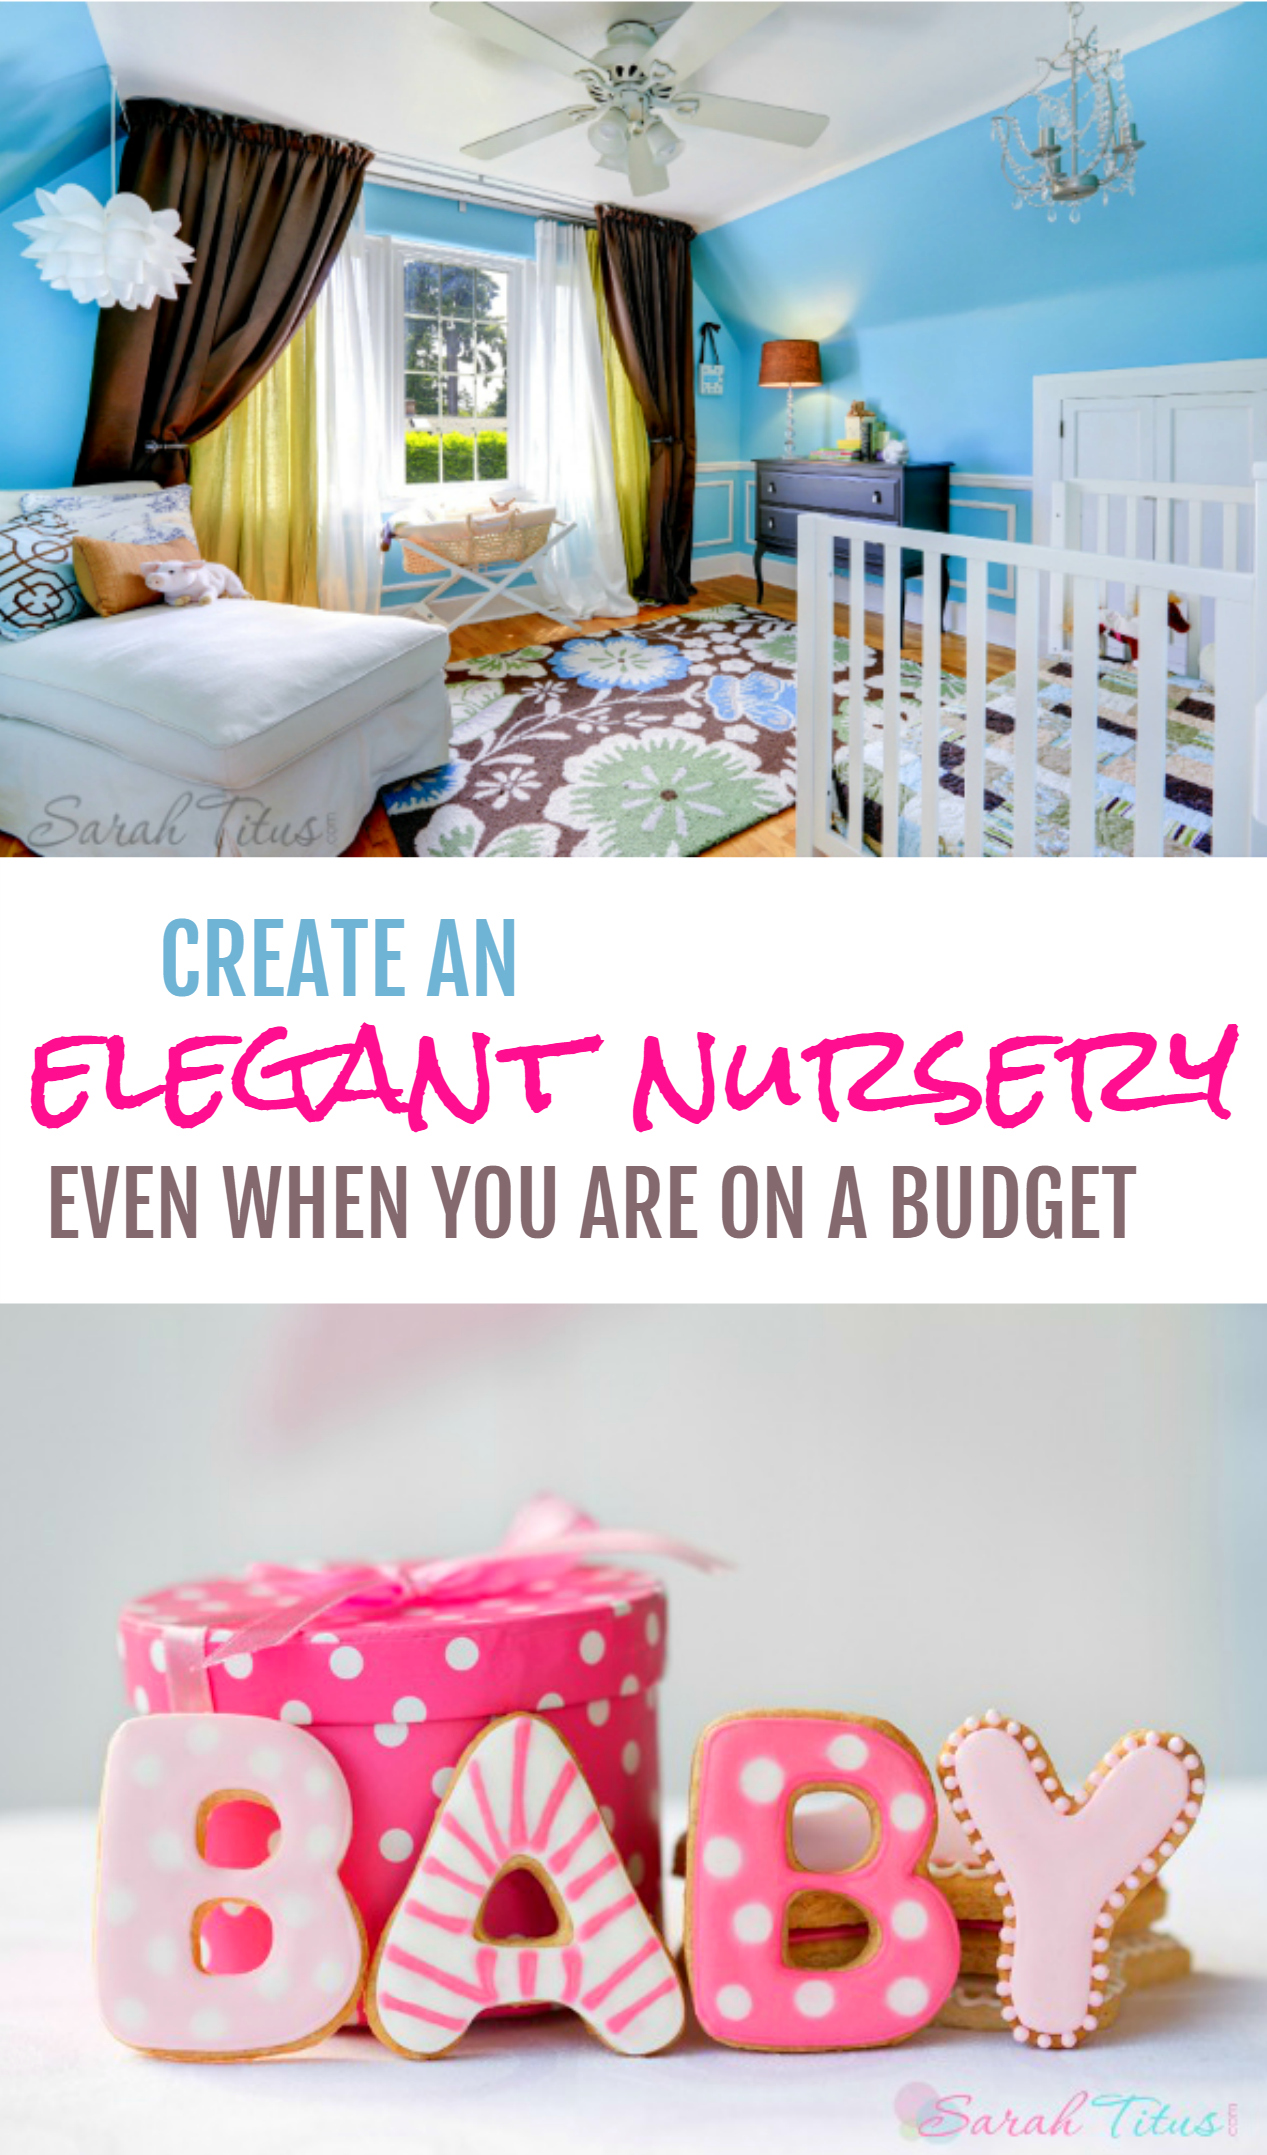 It is true that babies need a lot before they are born, but, with a little finesse, you can create an elegant nursery even when you are on a budget. Here are some tips to do just that.